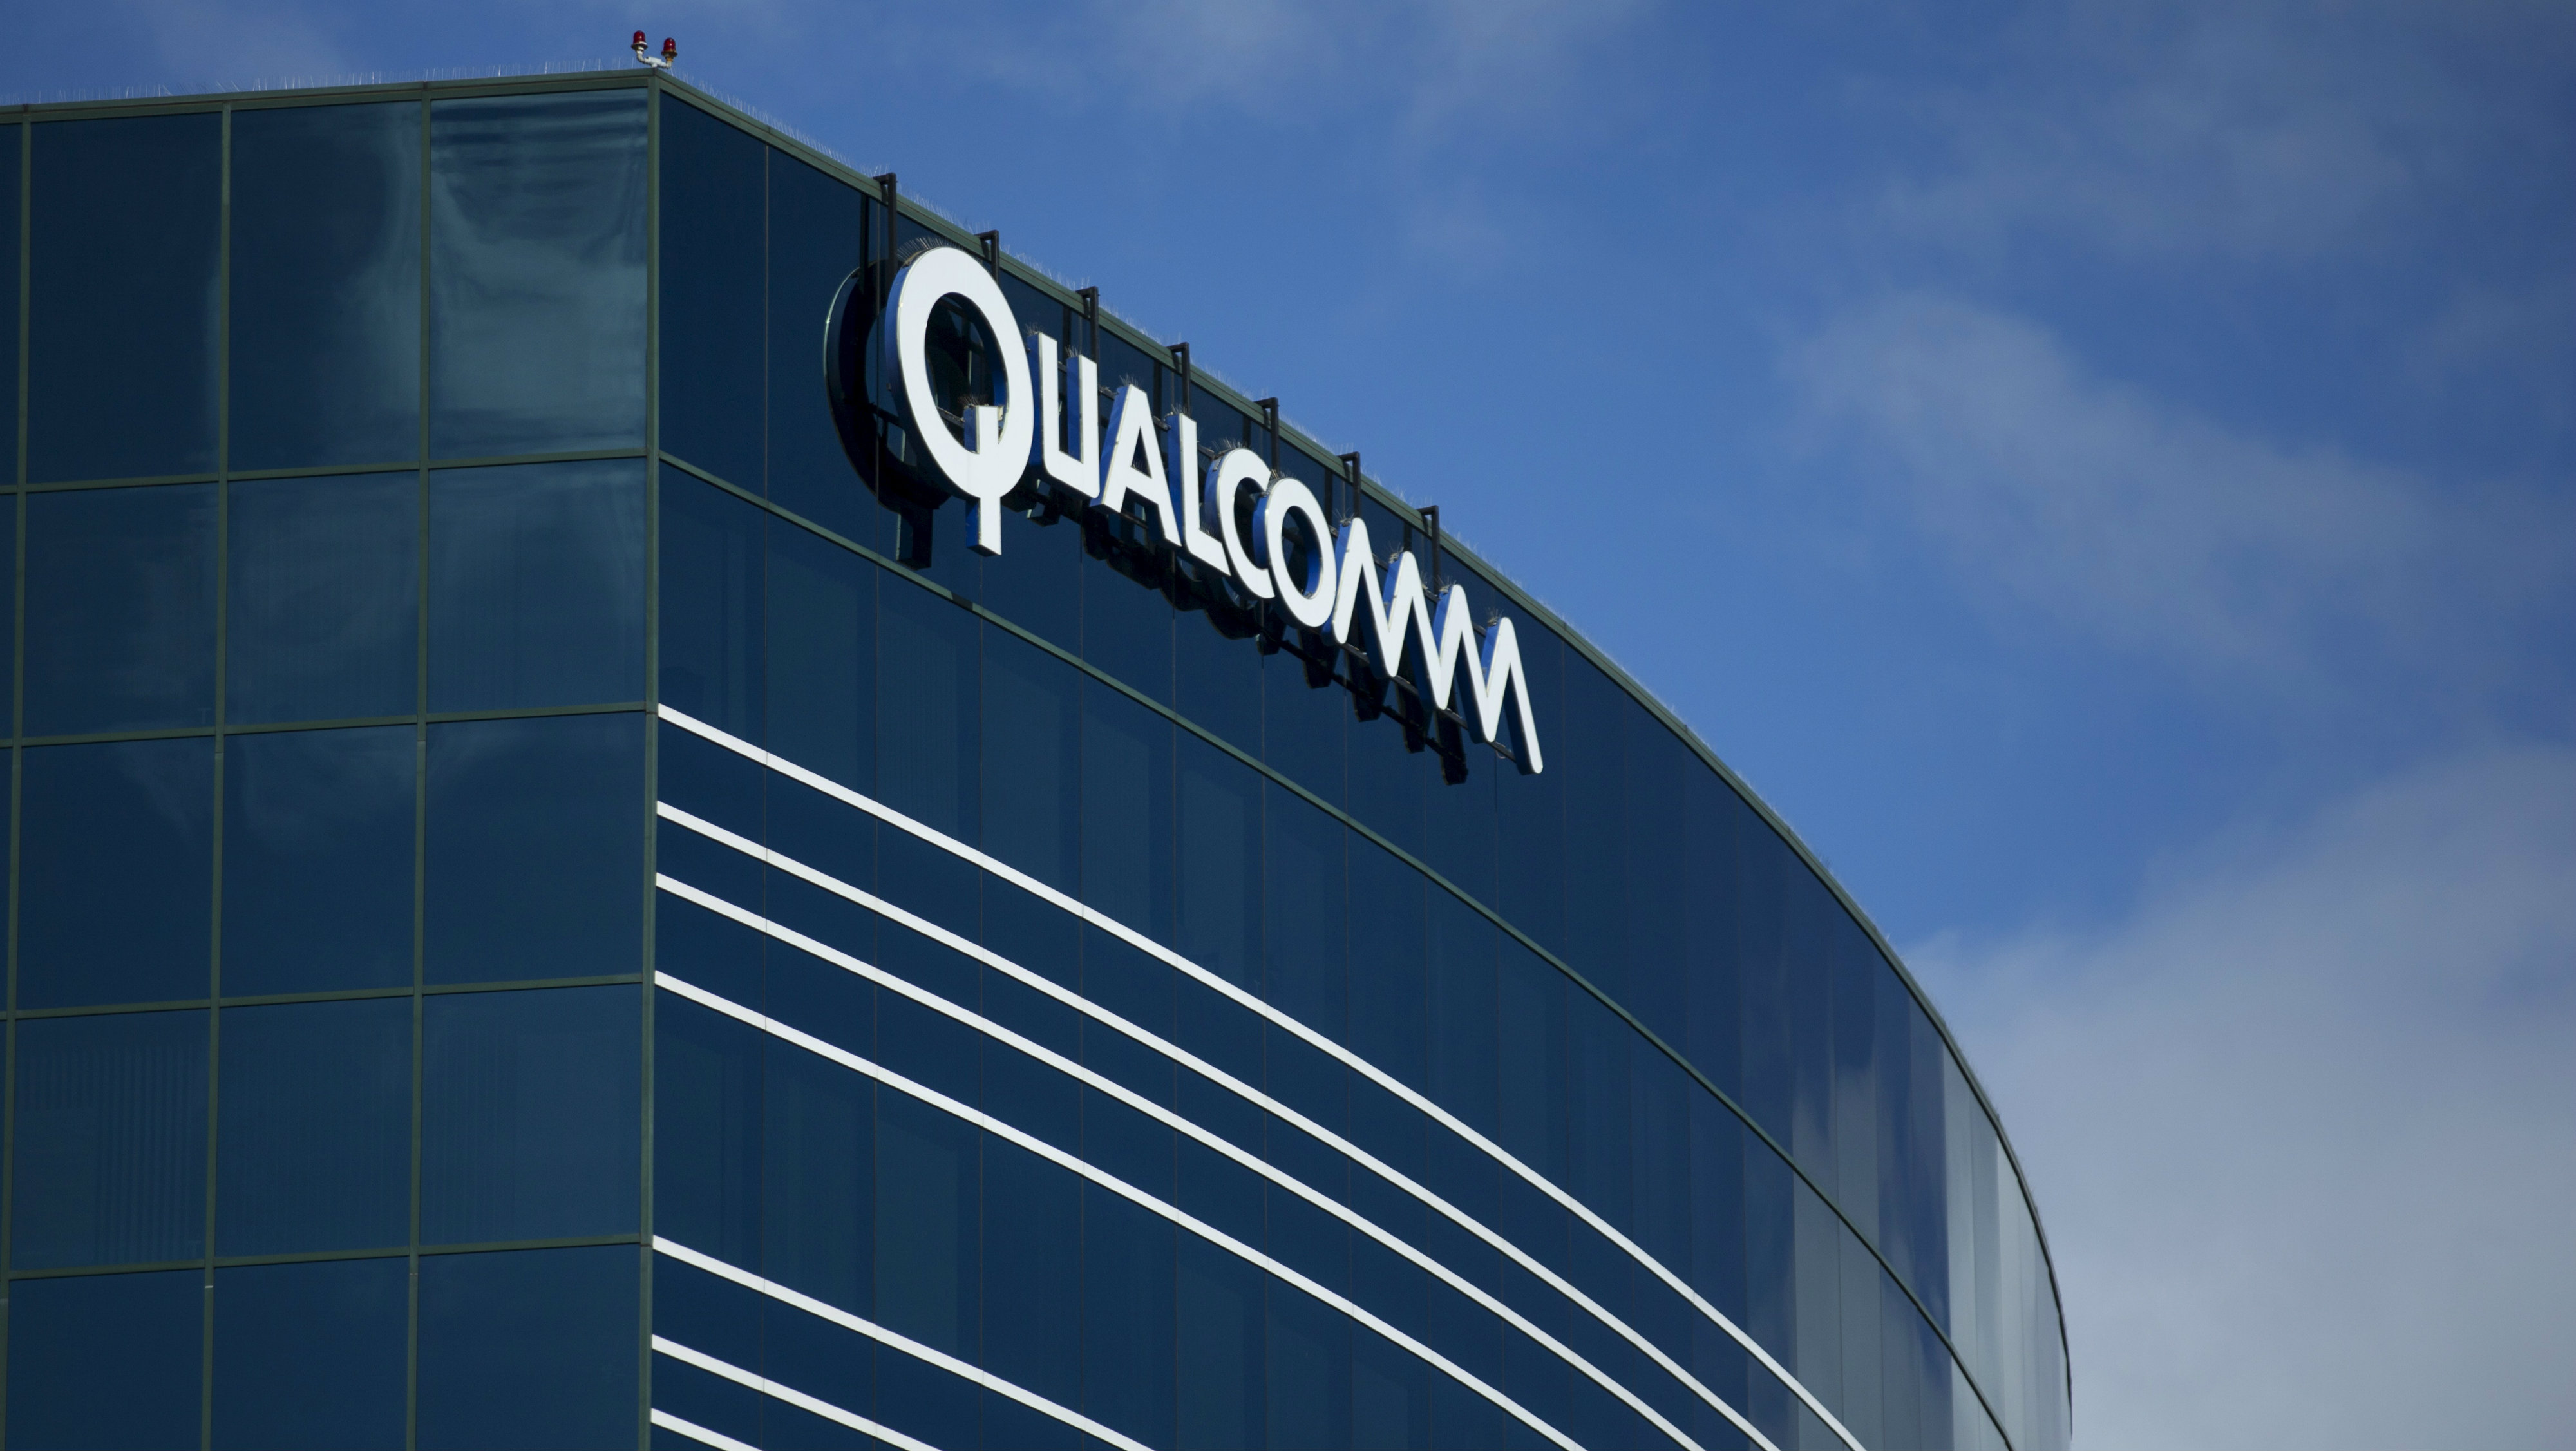 One of many Qualcomm buildings is shown in San Diego, California, U.S. on November 3, 2015